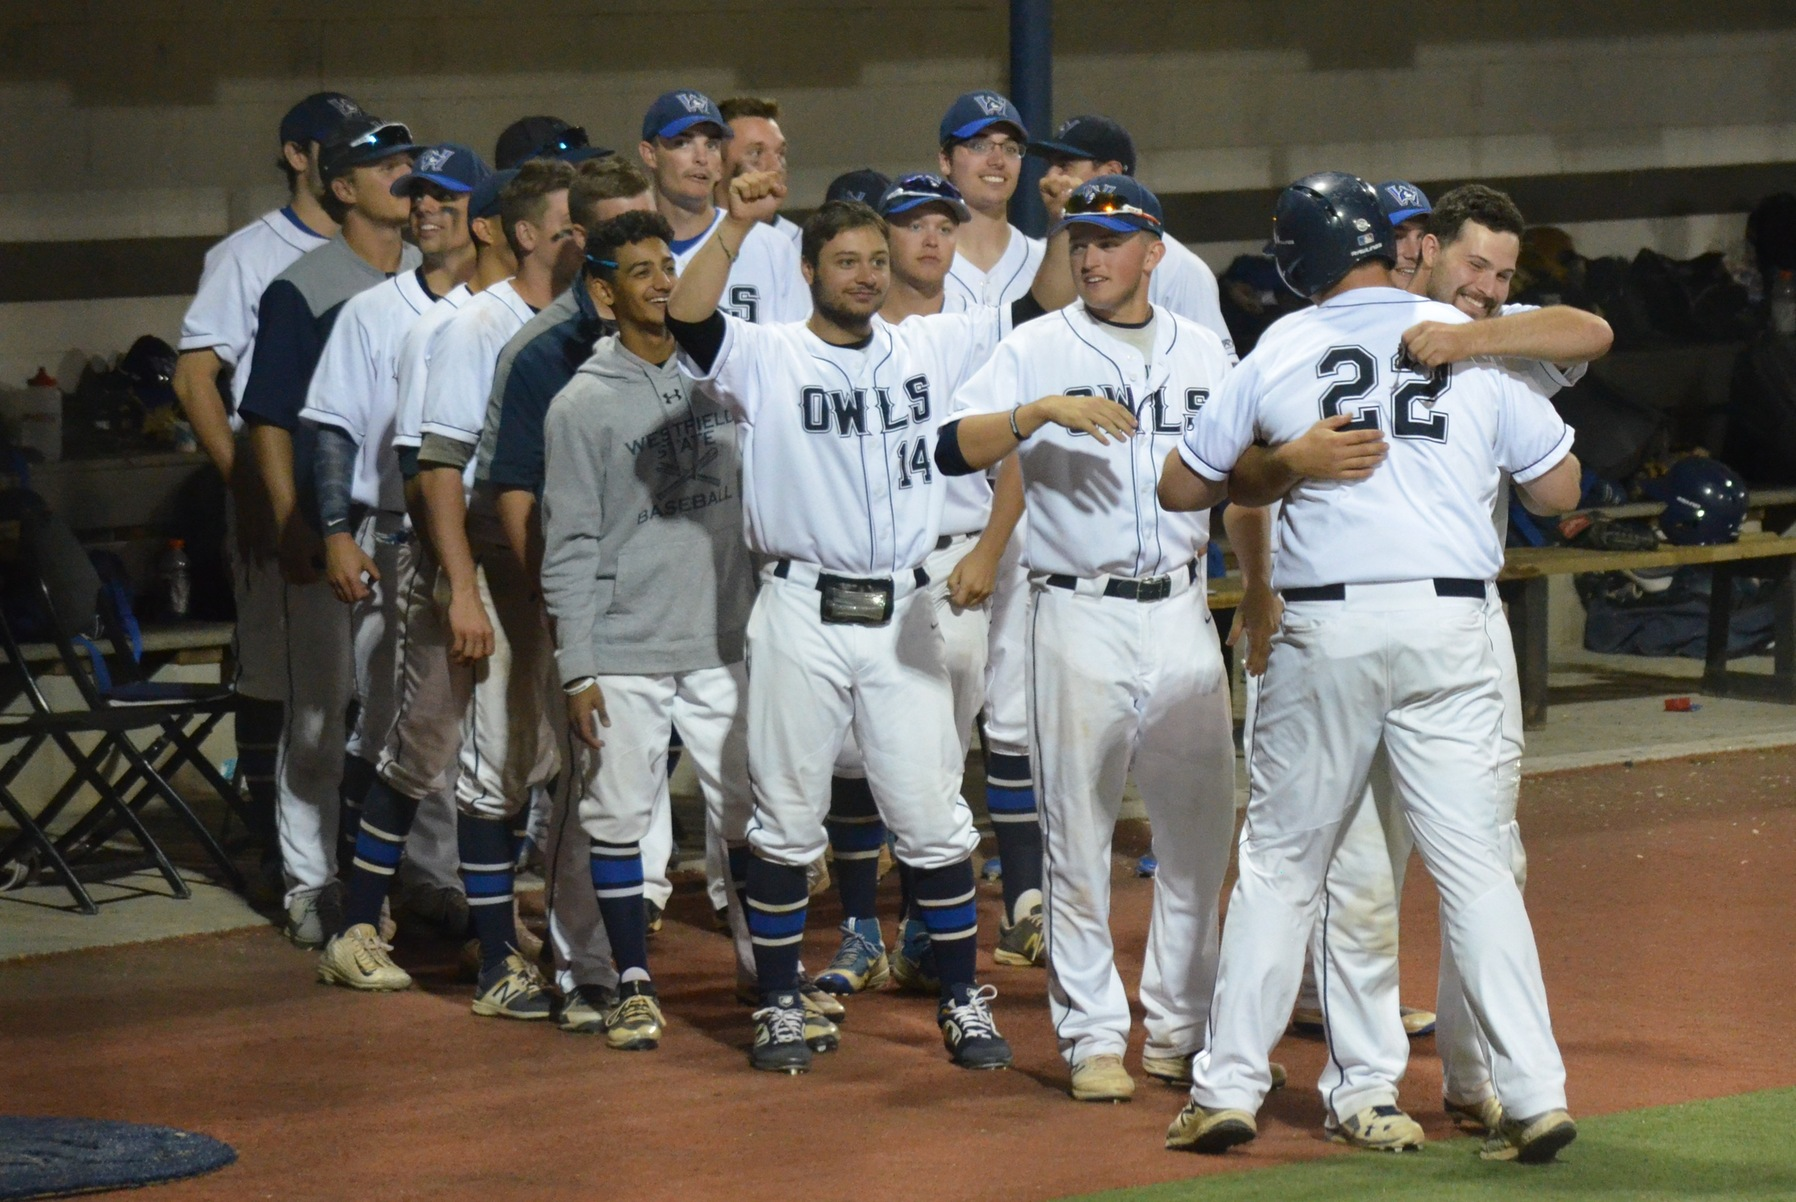 Westfield State senior pitcher John Gegetskas (22) gets a hug from Jake Gibb and is cheered by his teammates after being lifted for a pinch runner after Gegetskas walked in his only career plate appearance in the ninth inning against Shenandoah in the NCAA Tournament.